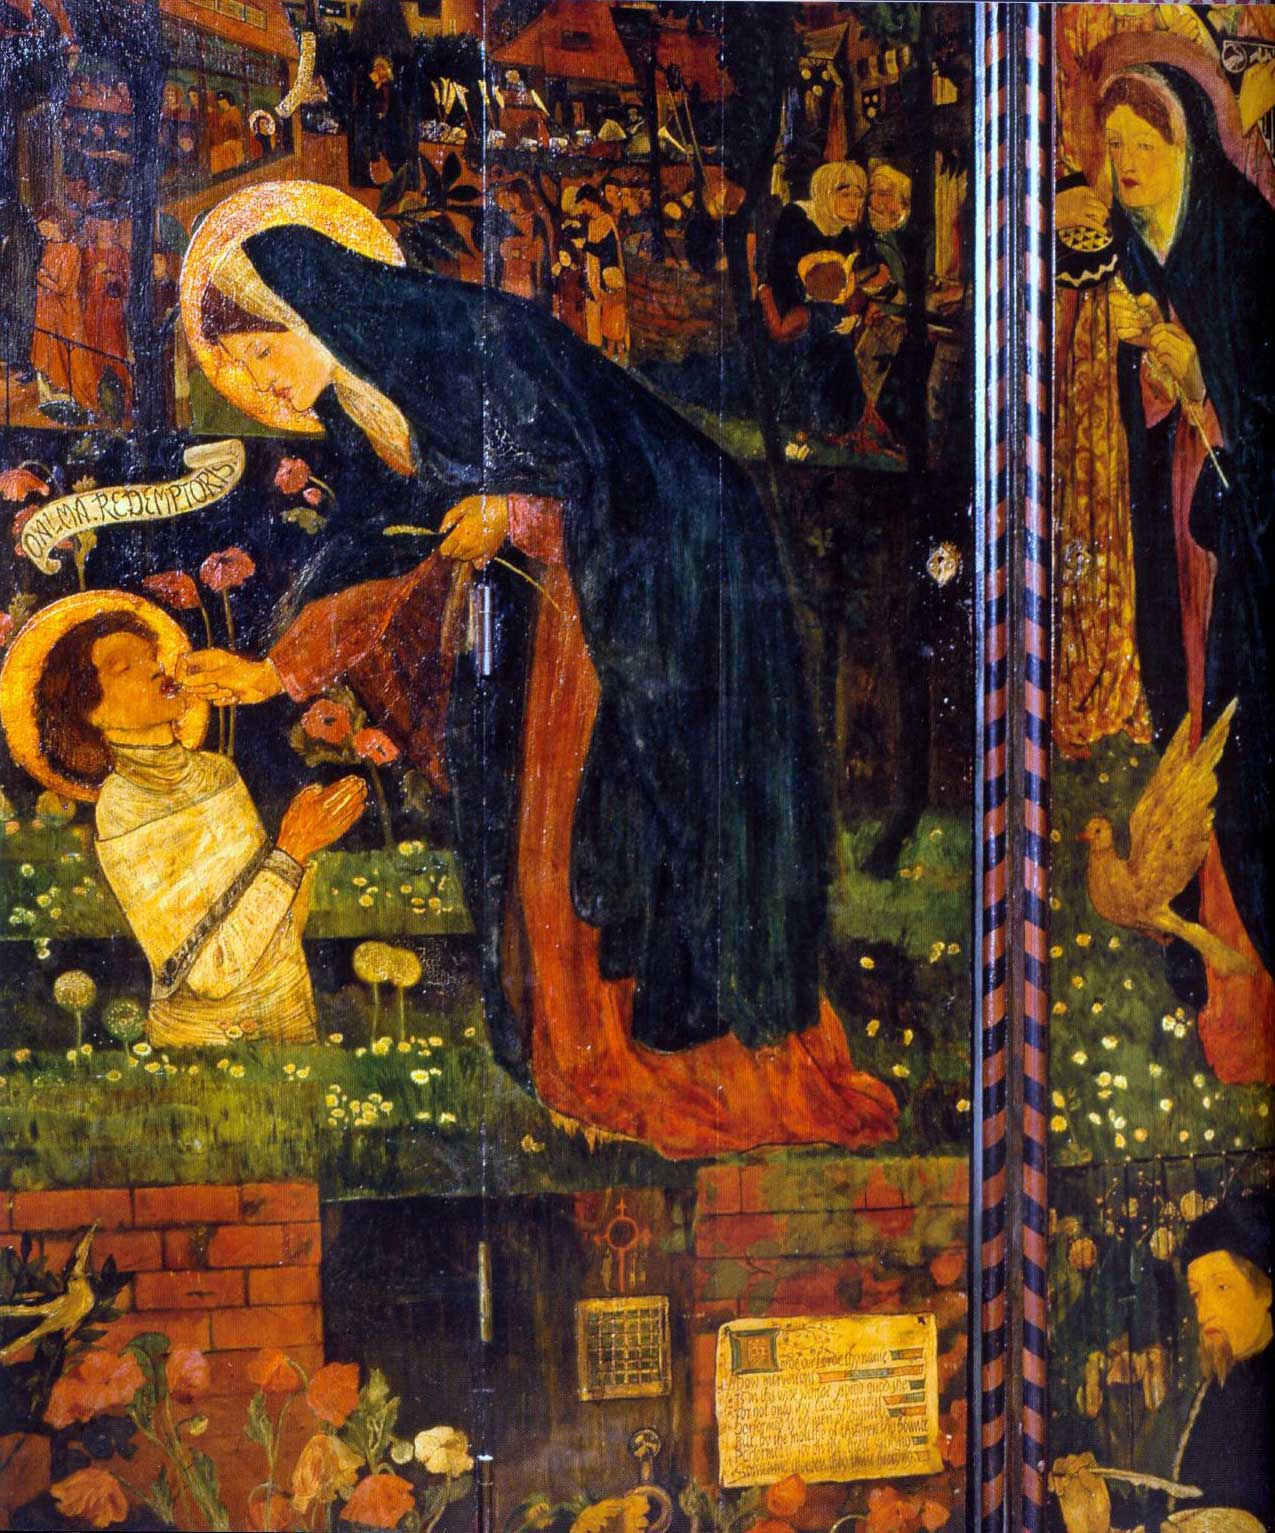 Detail from the Prioress's Tale cabinet at Red  House, painted by William Morris and circle